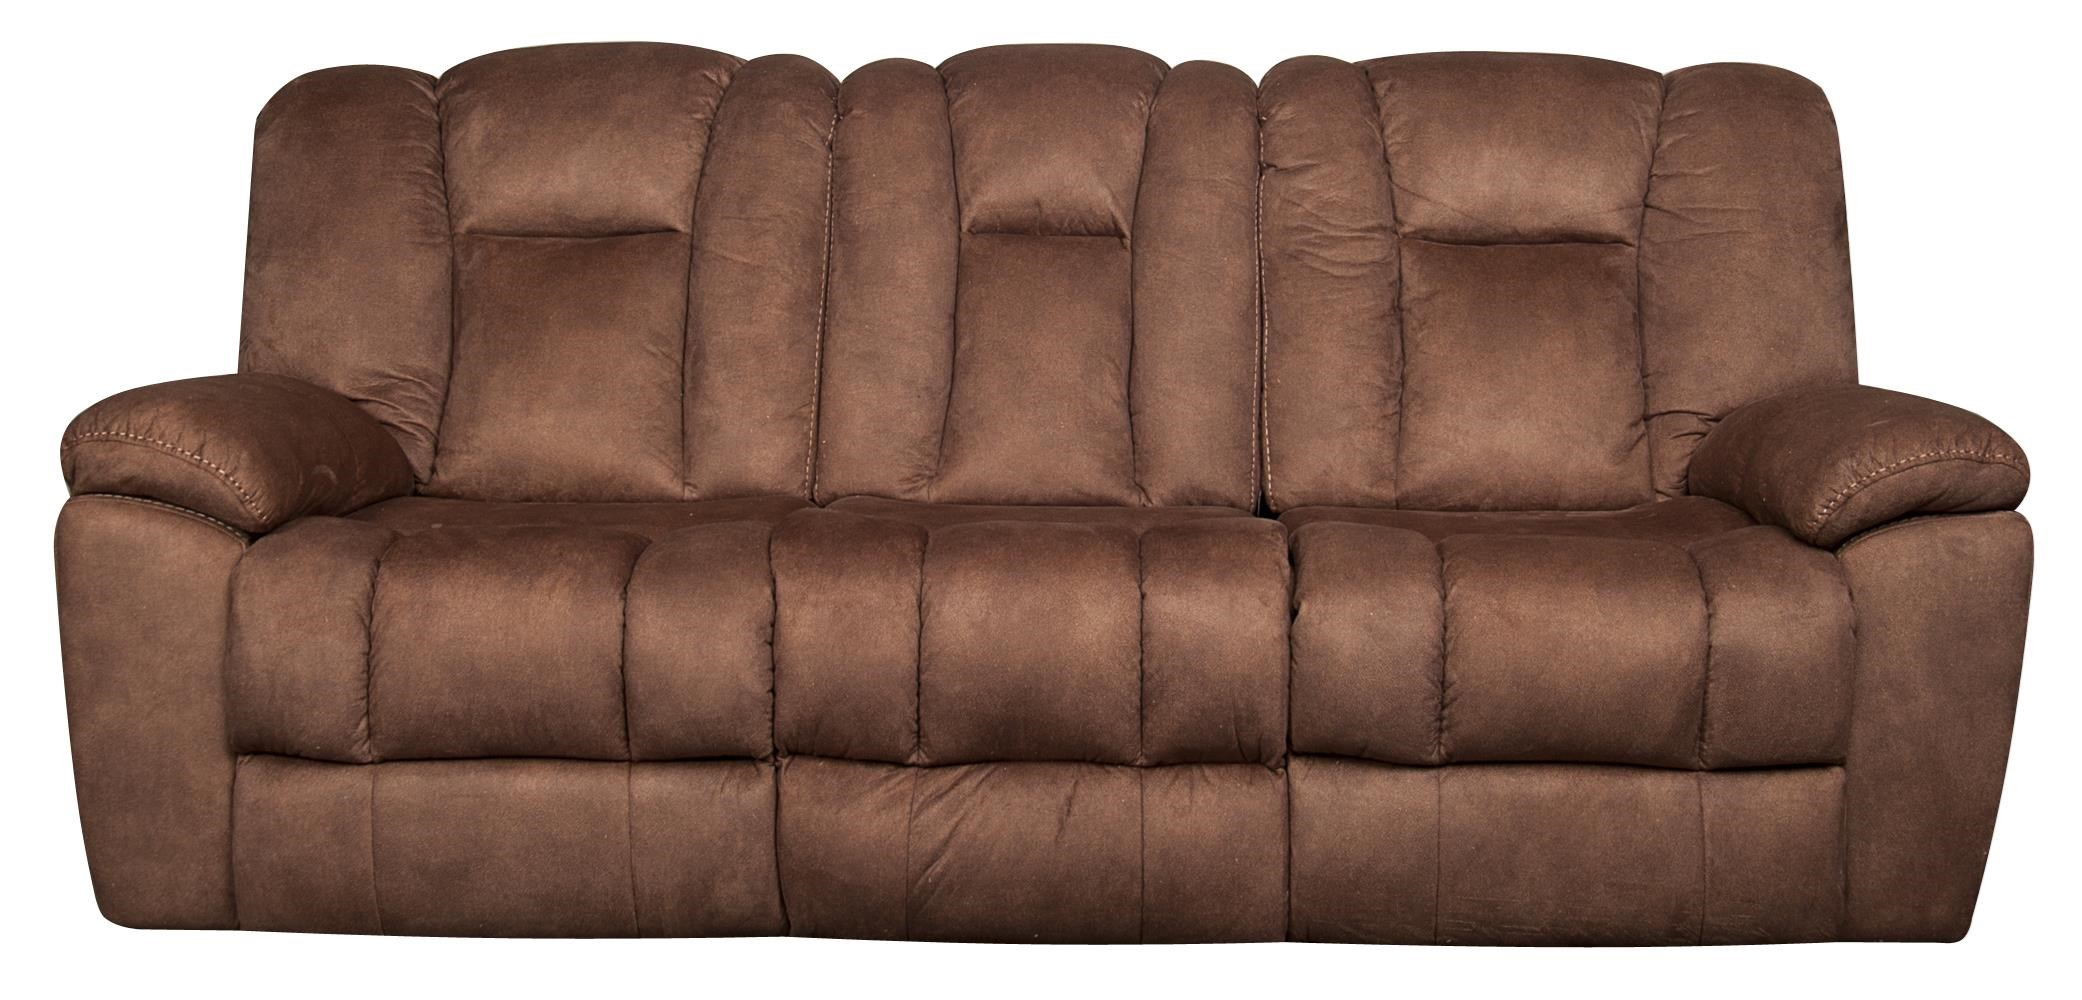 Morris Home Furnishings Caleb - Caleb Reclining Sofa - Item Number: 321395261